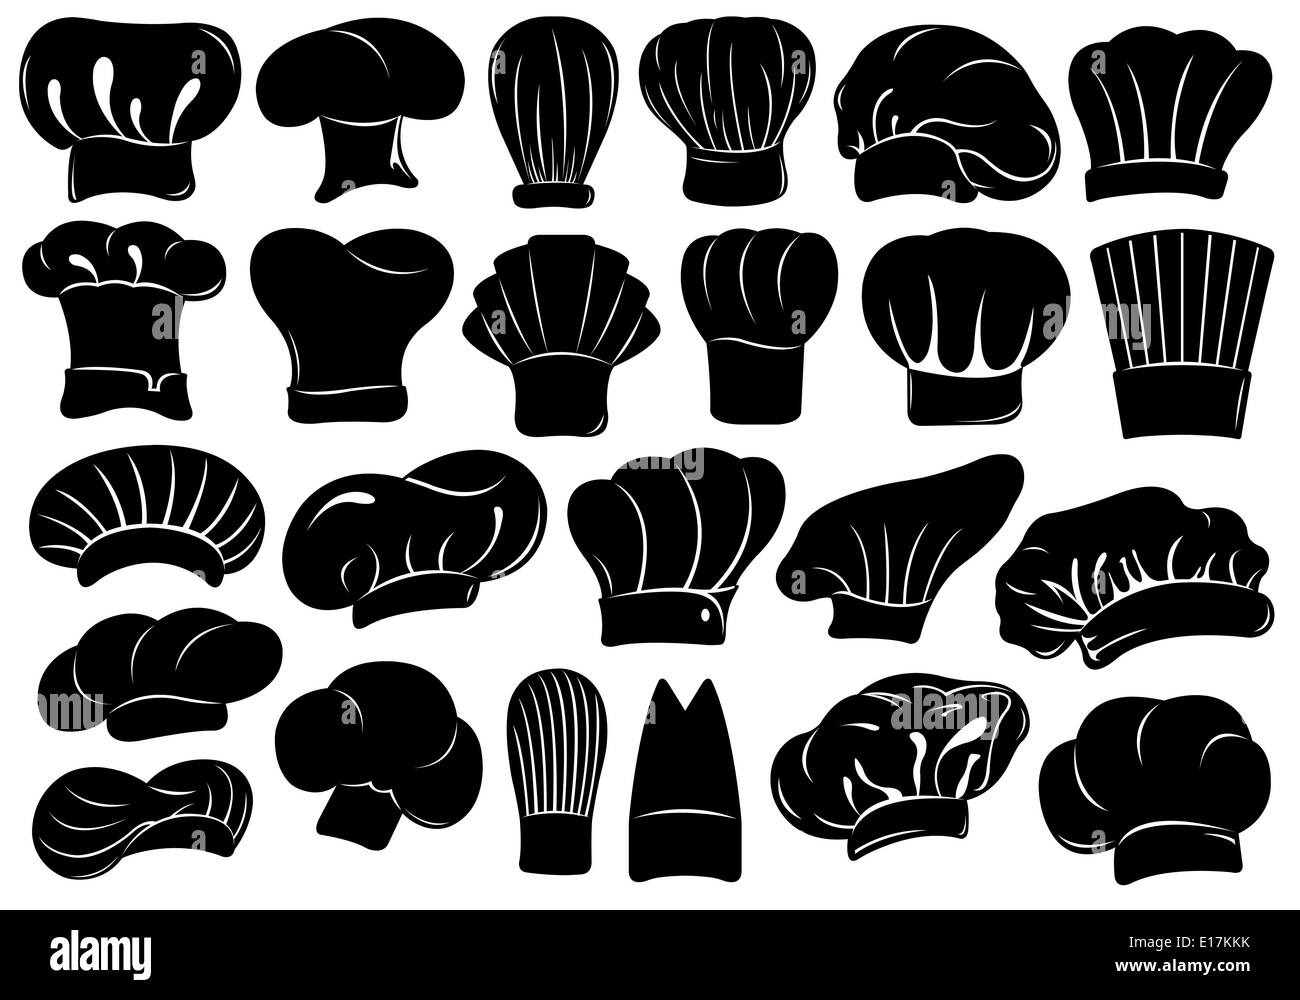 Set Of Different Chef Hats Stock Photo Alamy